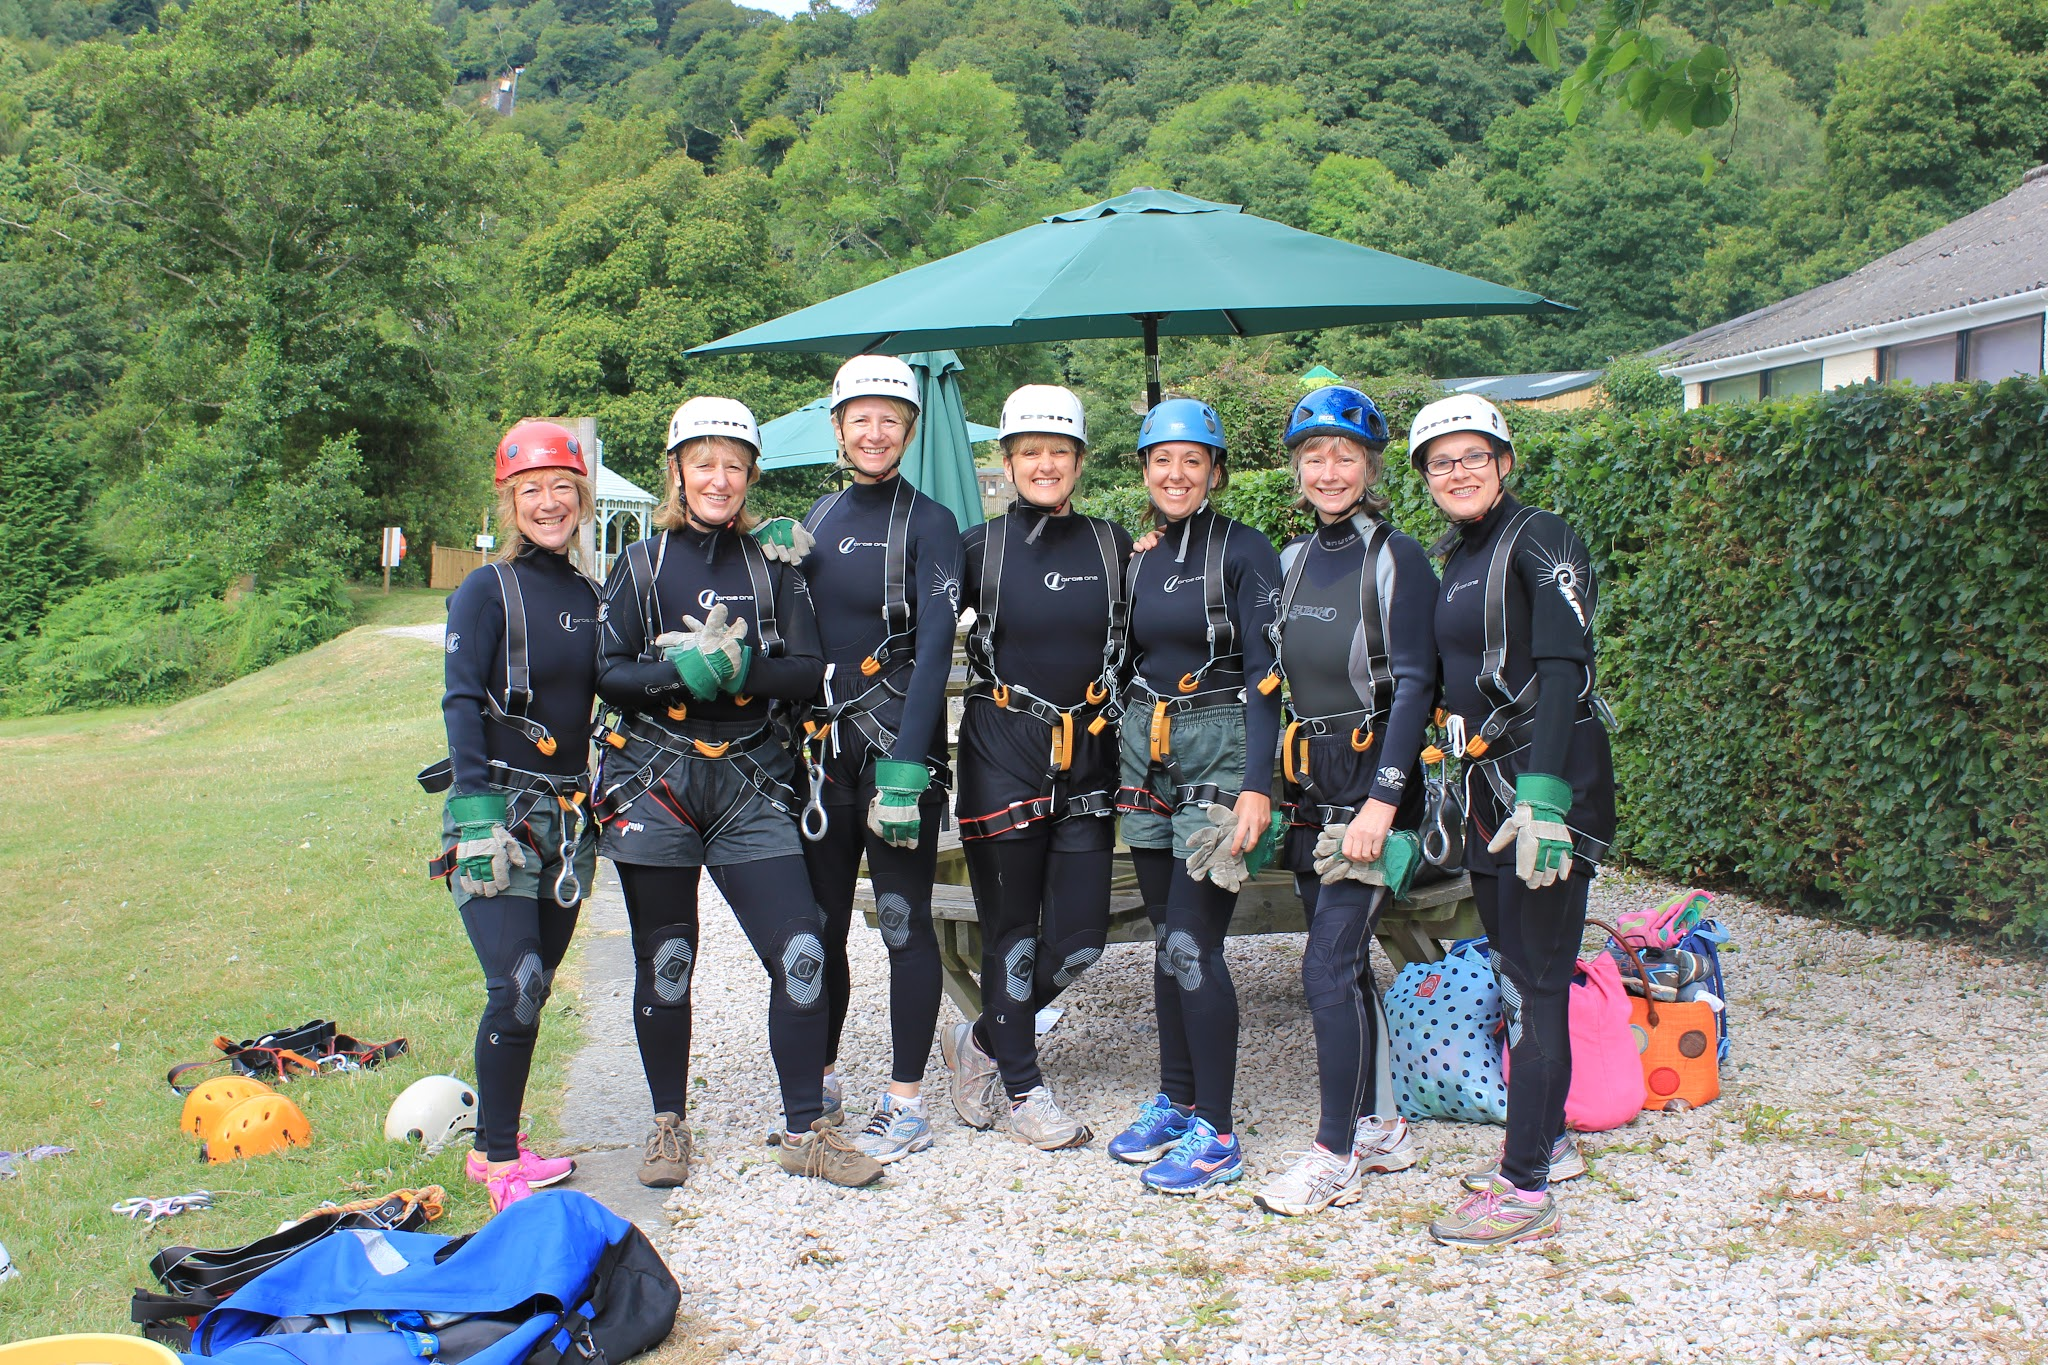 Kitted up and ready to go abseiling at Canonteign Falls